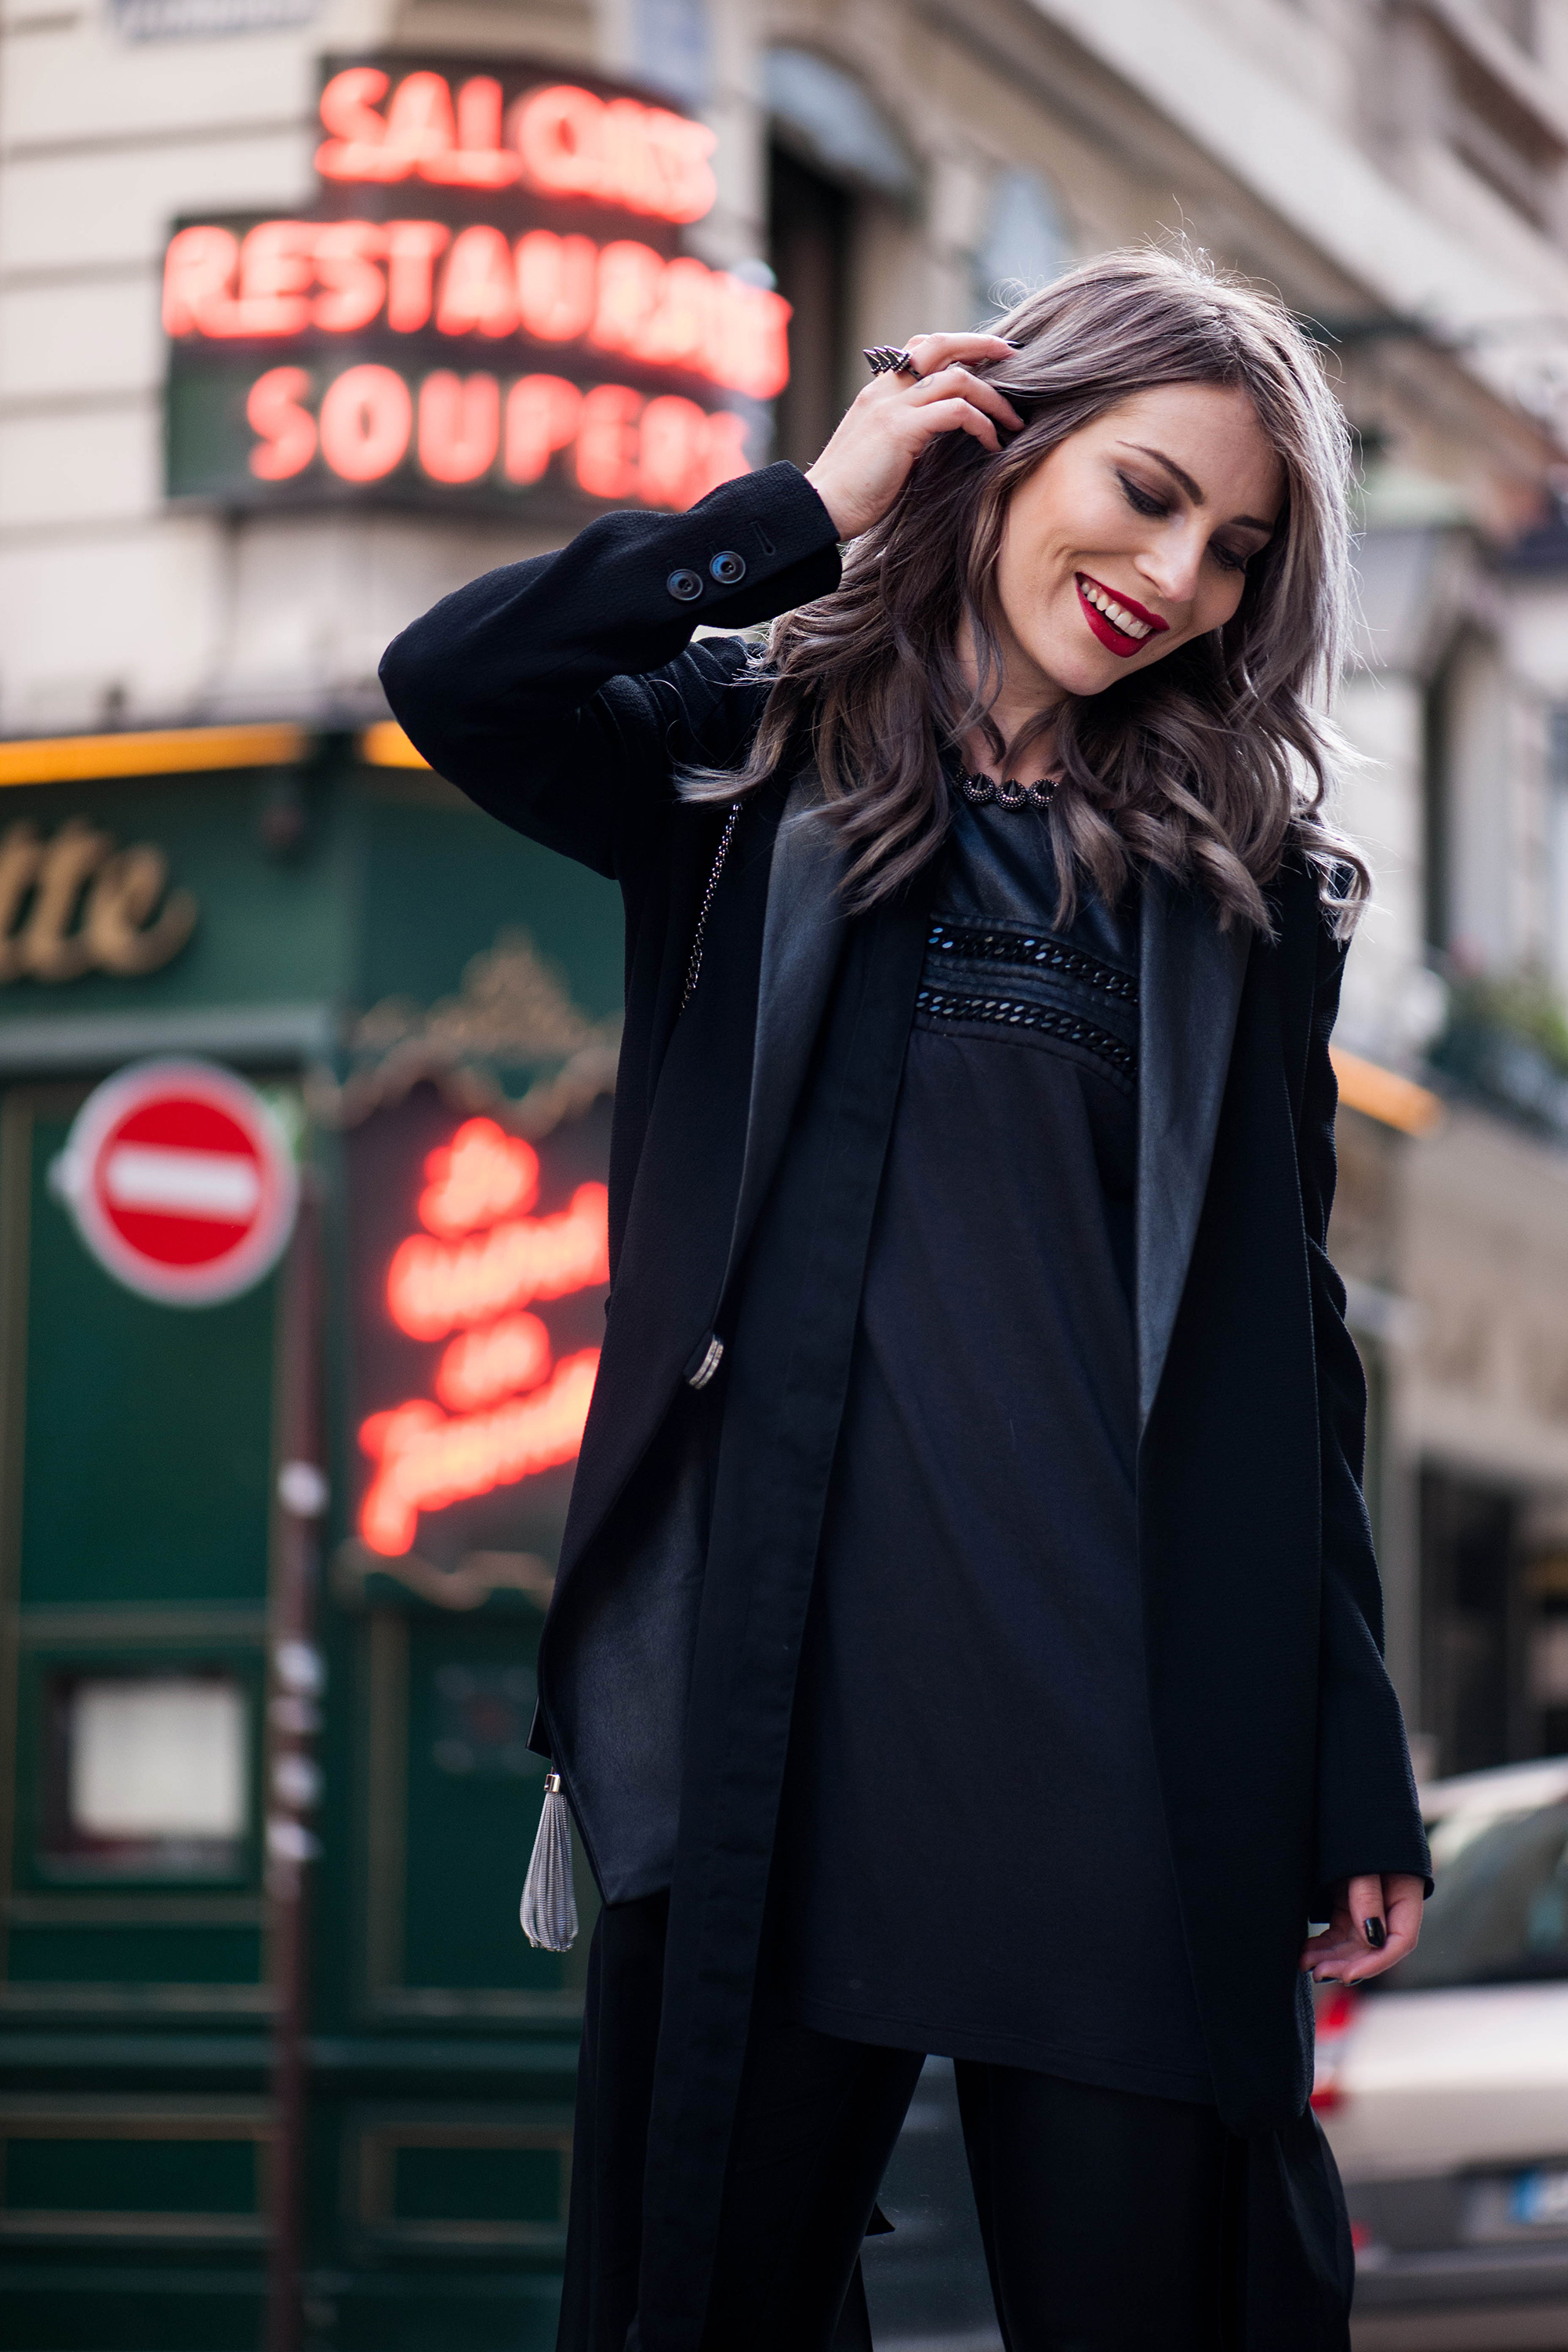 70s-leather-flared-pants-streetstyle-paris-6